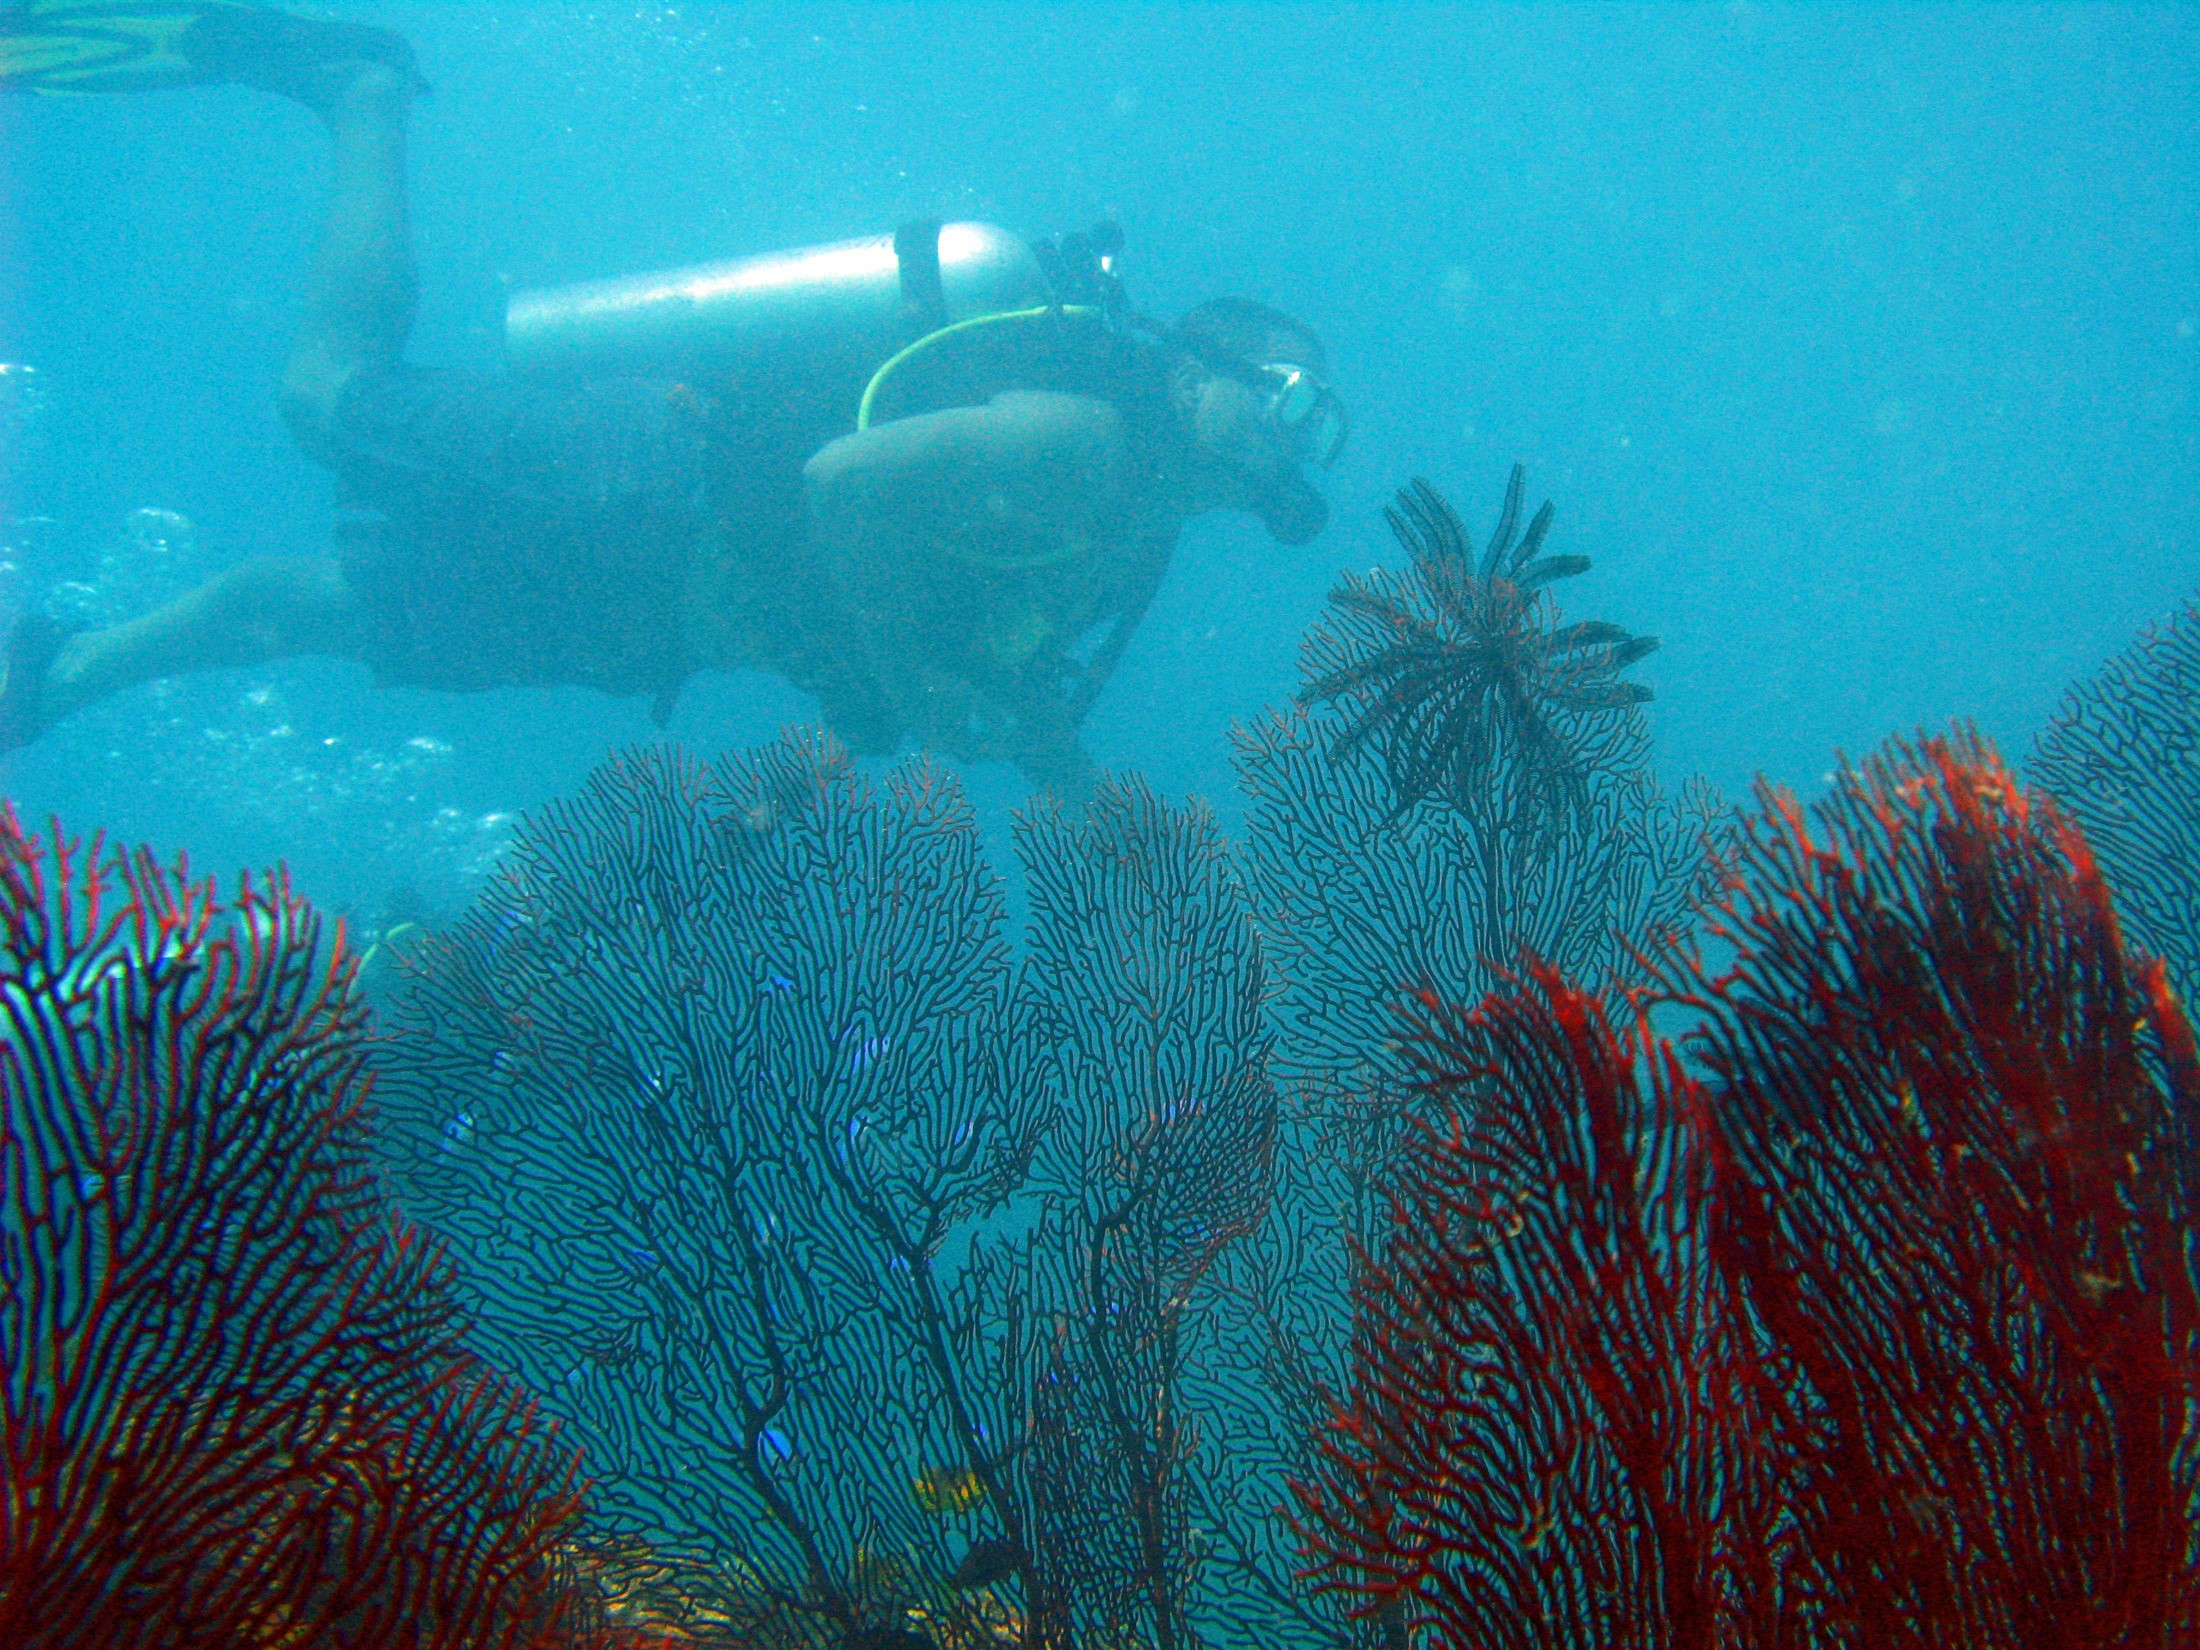 Underwater view of large intricate fan corals with a scuba diver swimming past behind them